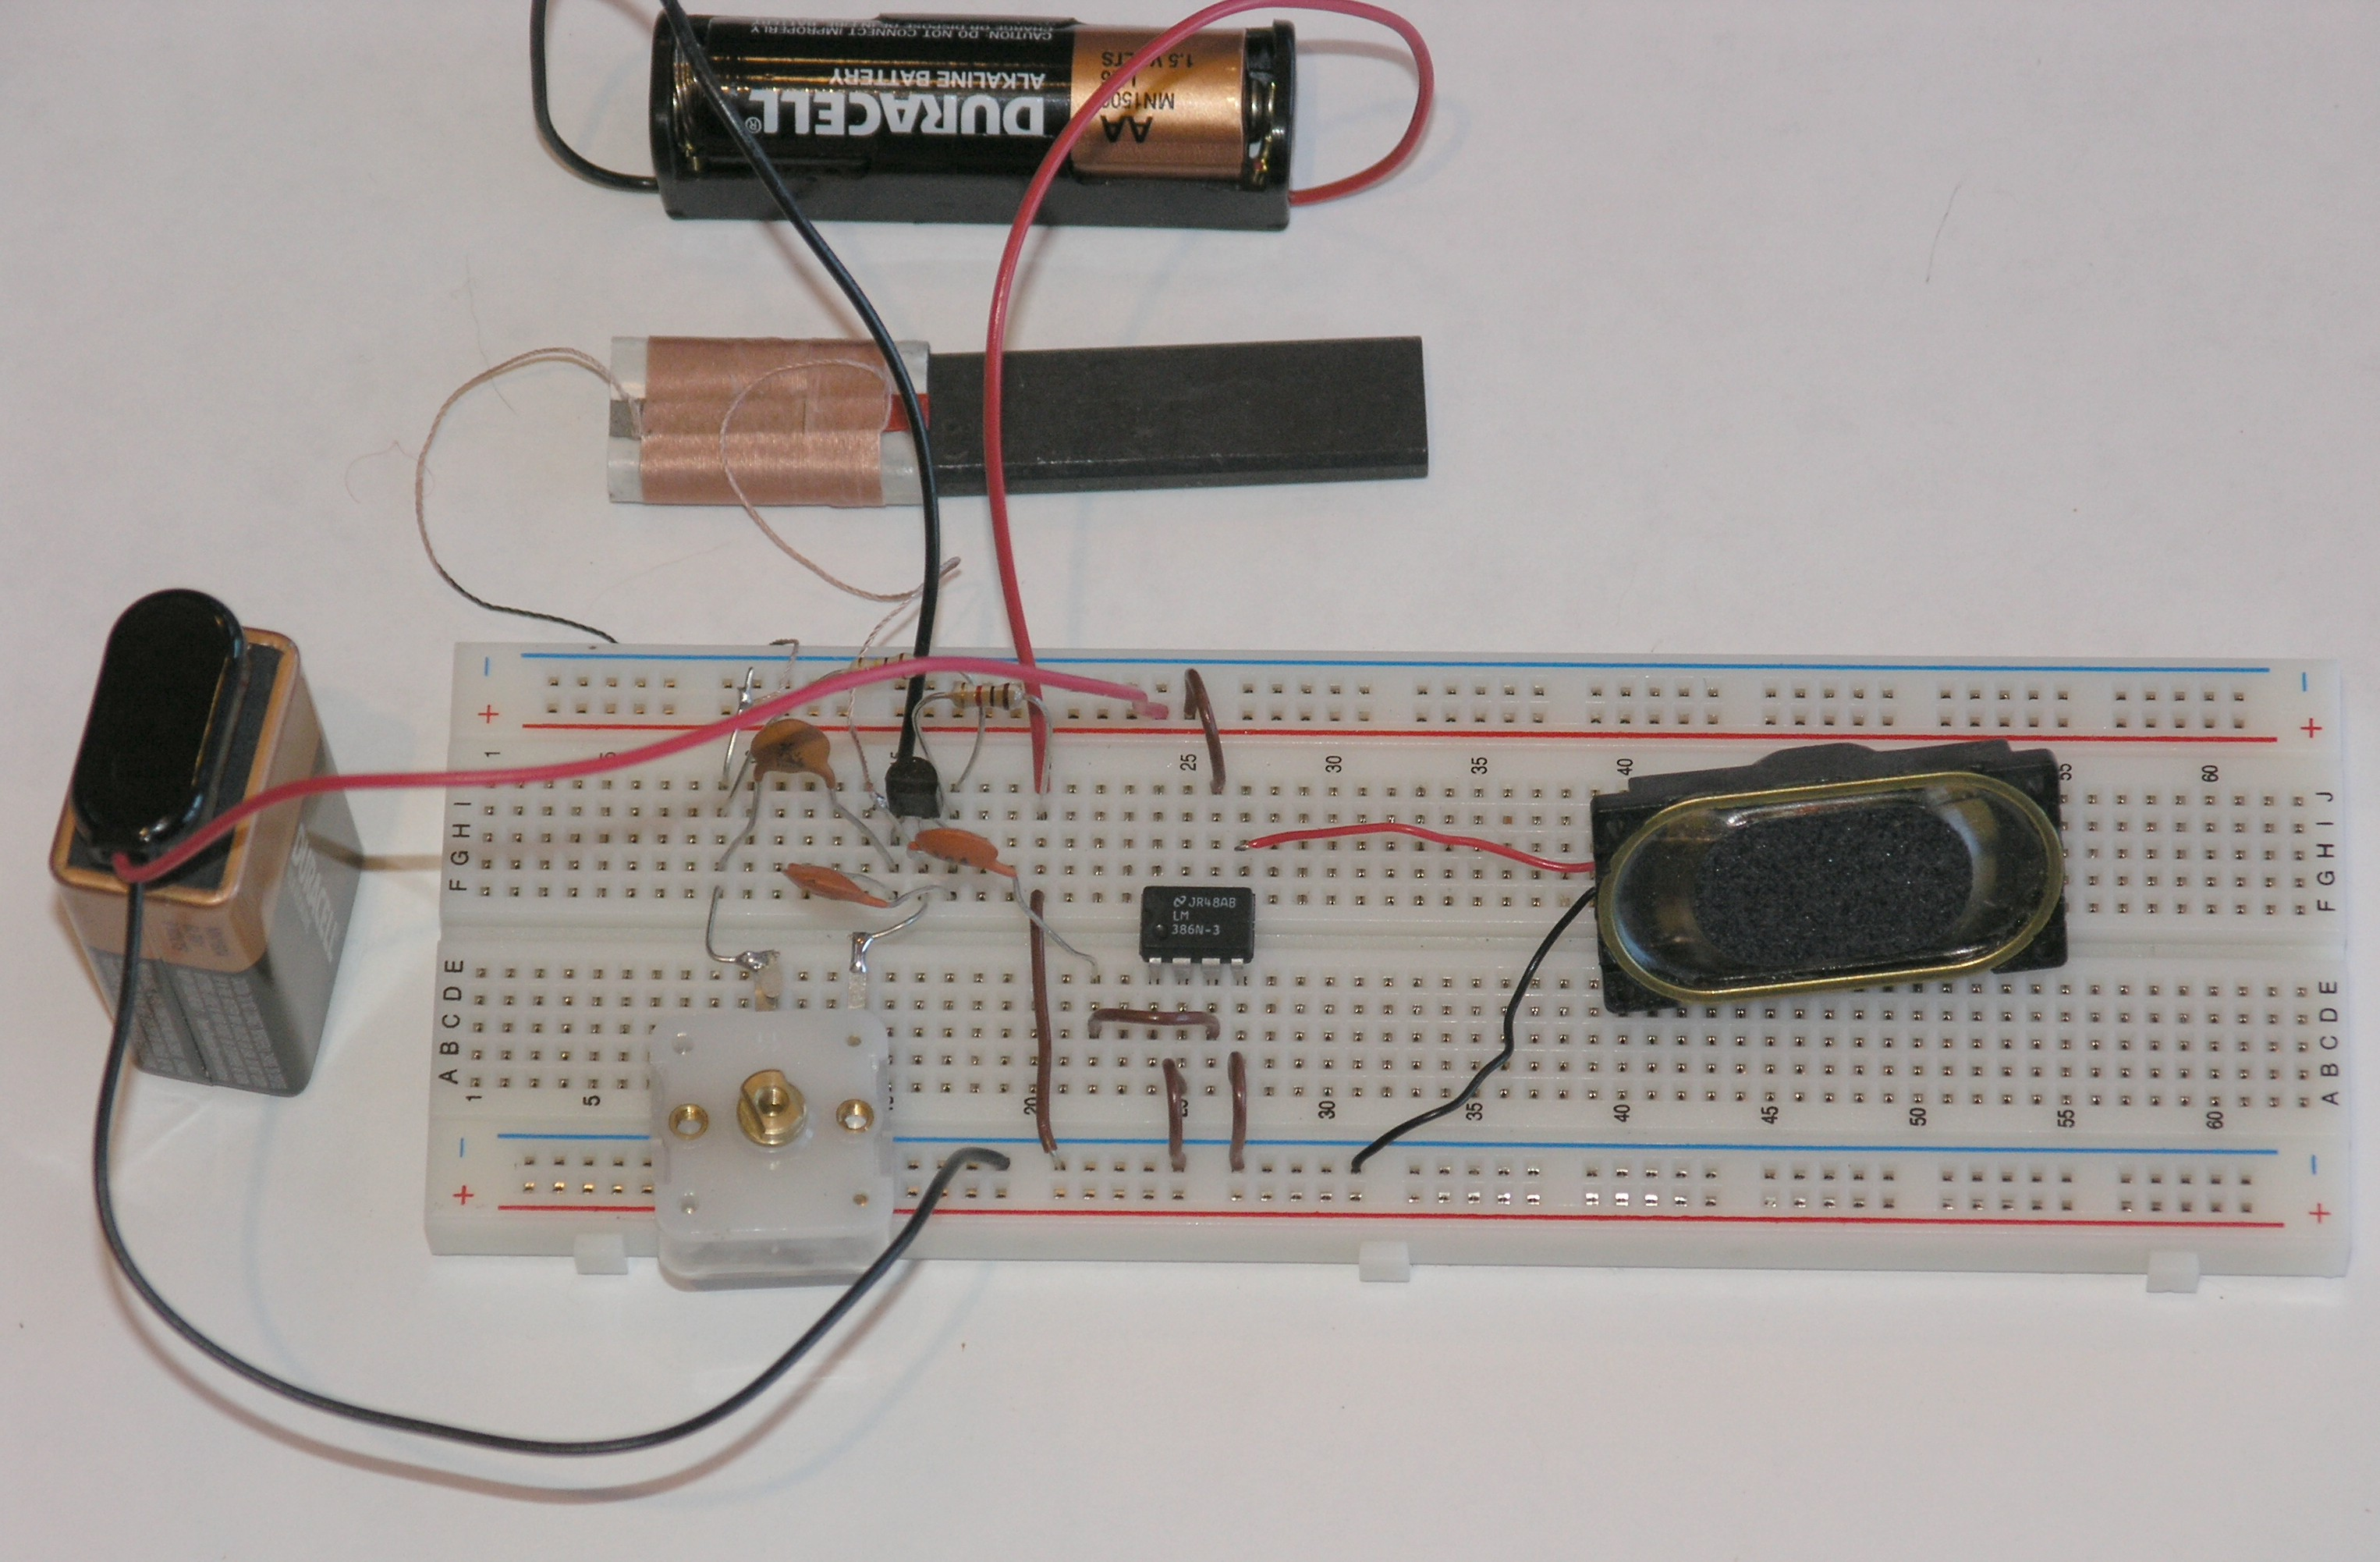 Chapter 10 Computers And Electronics Build A Simple Integrated Very Led Flashing With Sound Electronic Projects Circuits An Circuit Audio Amplifier